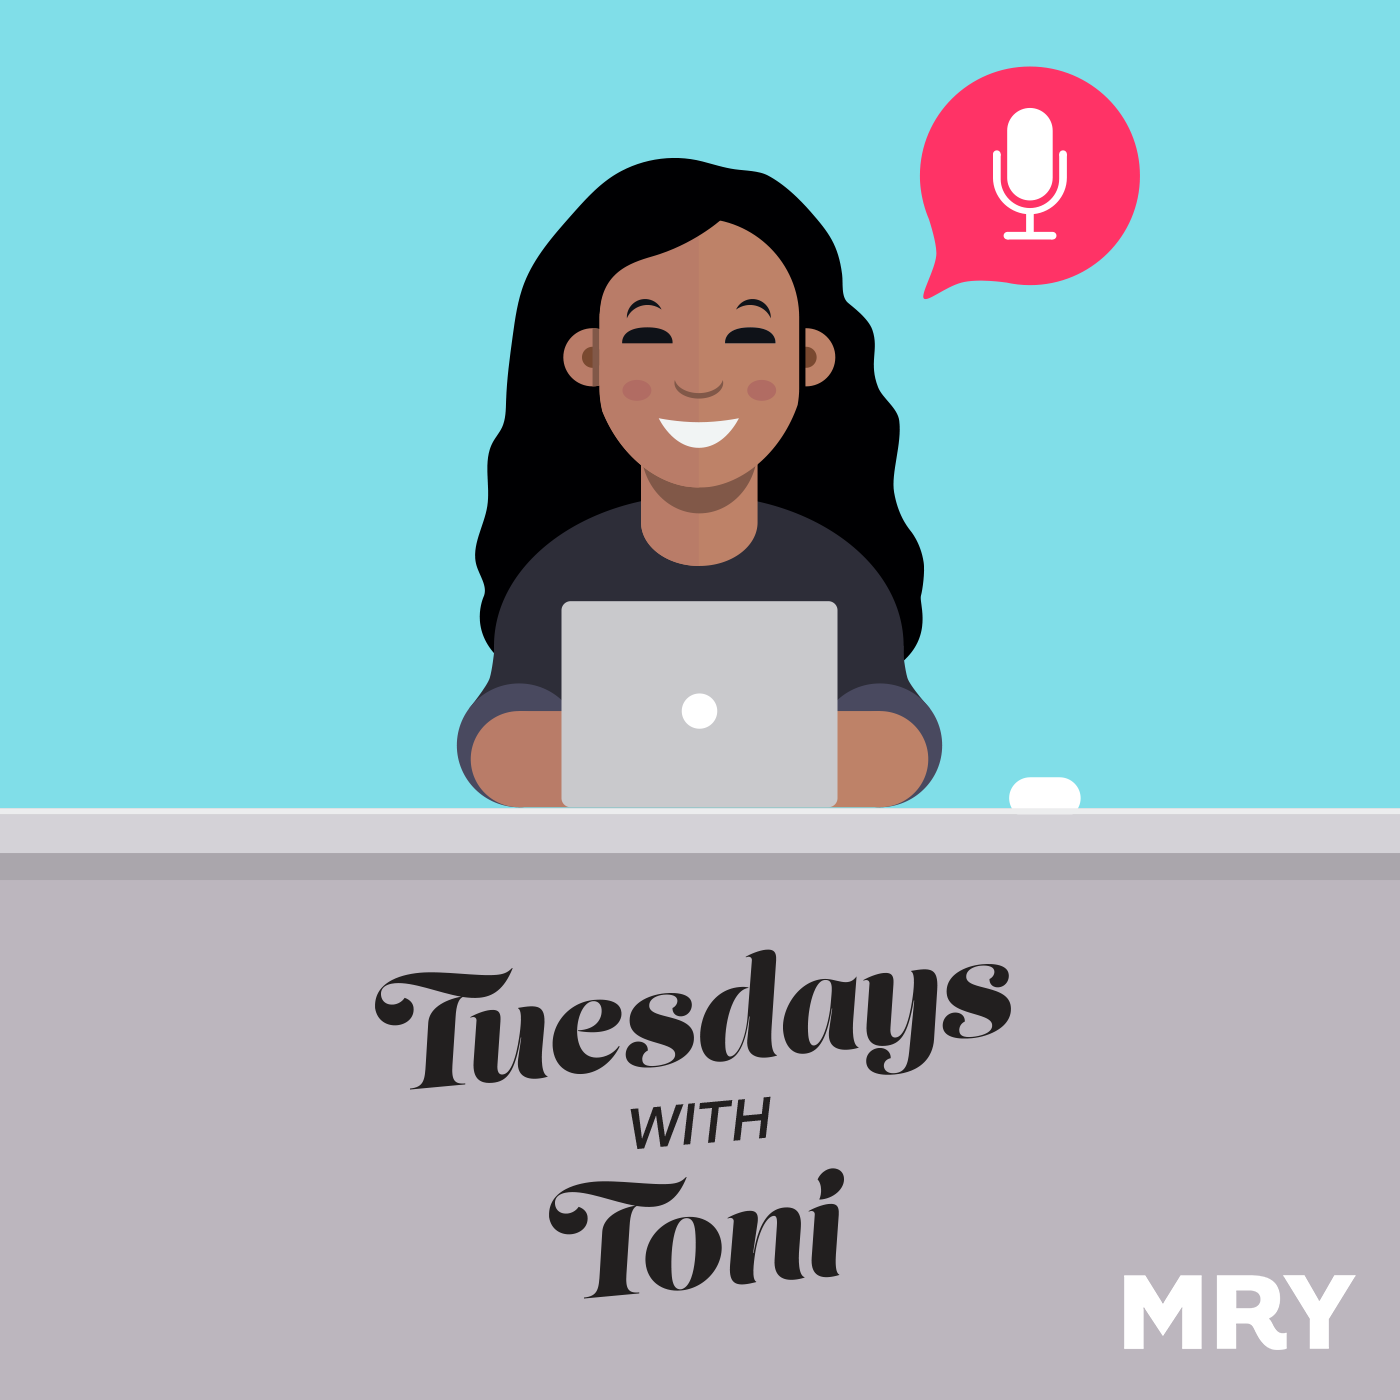 Tuesdays with Toni